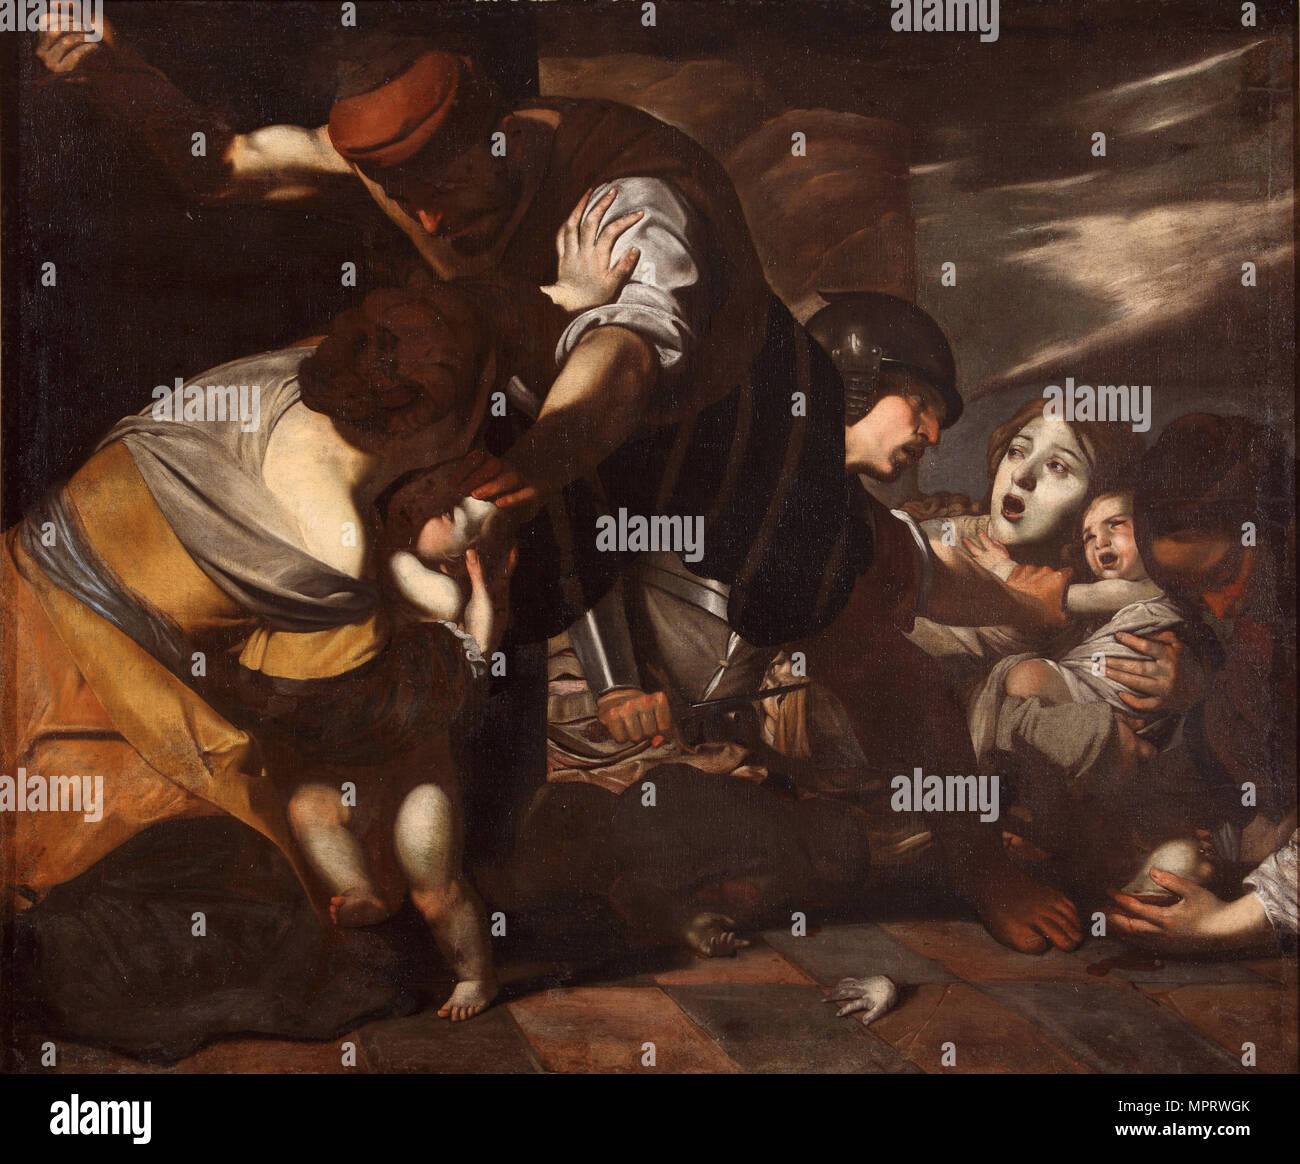 The Massacre of the Innocents. - Stock Image